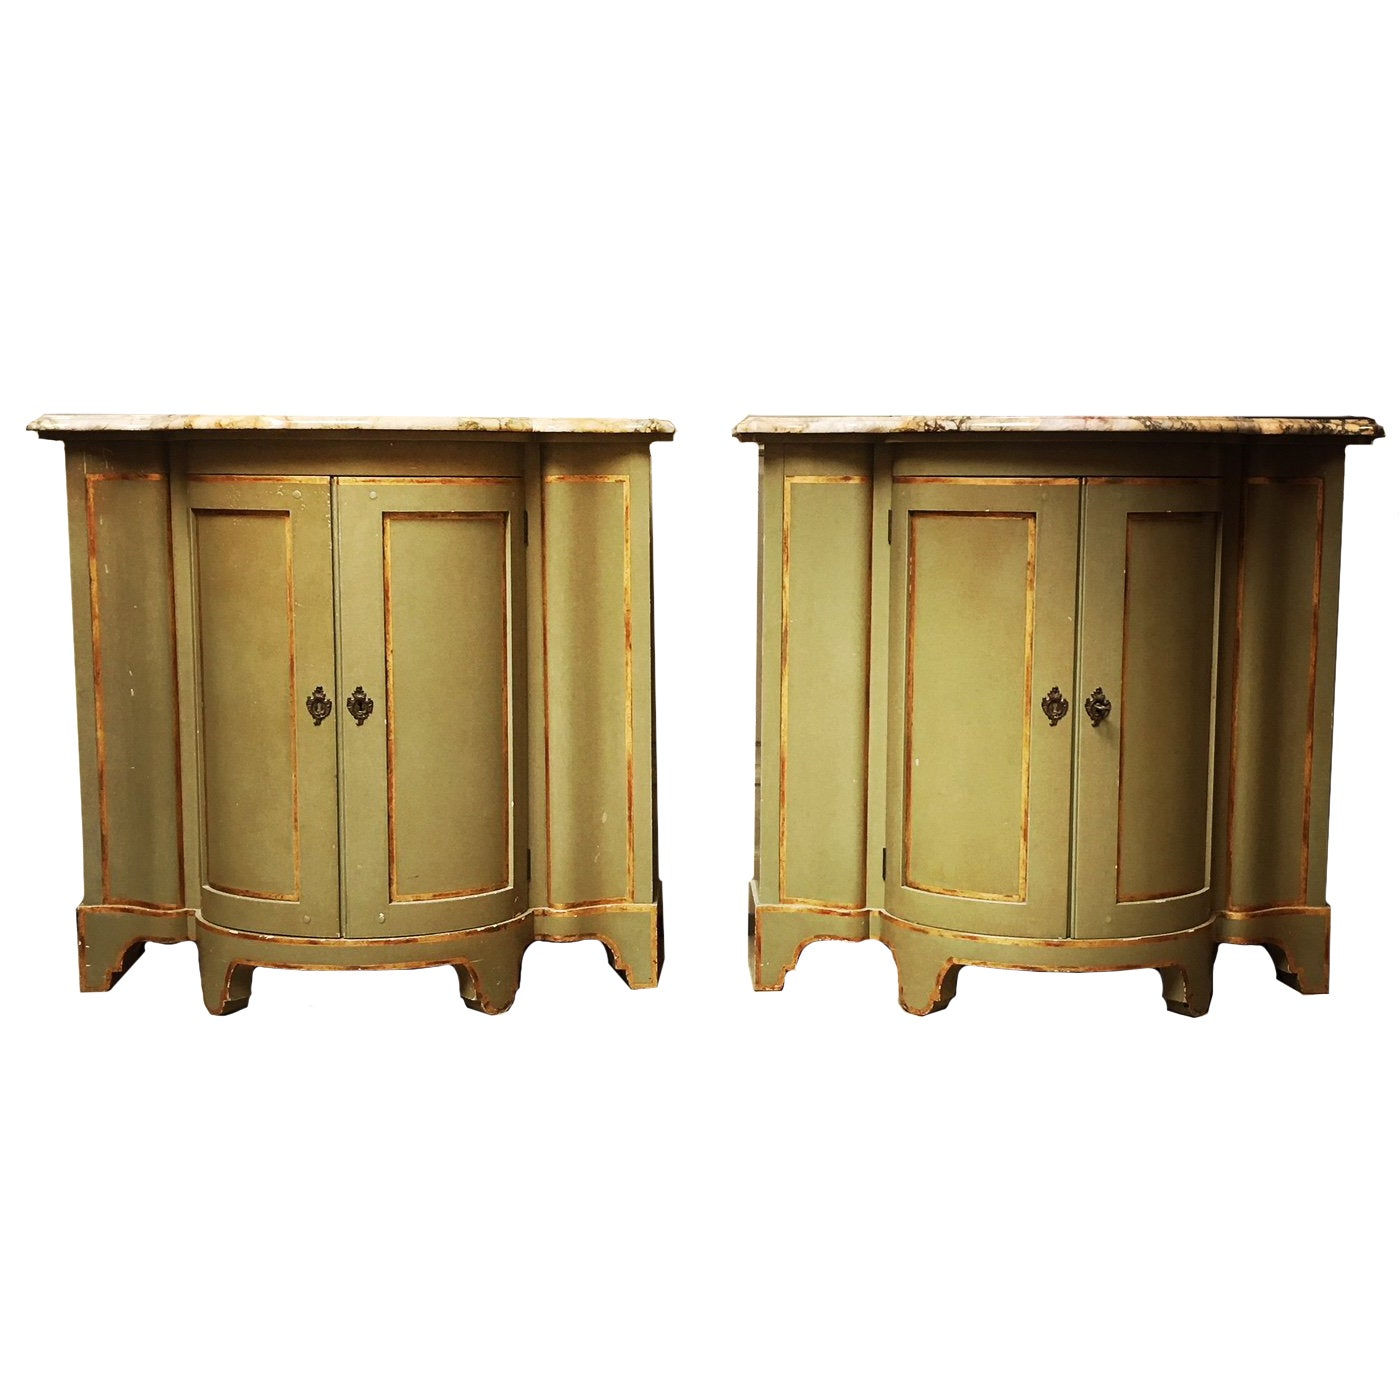 A Pair of Painted And Parcel Gilt Cabinets With Marble Tops